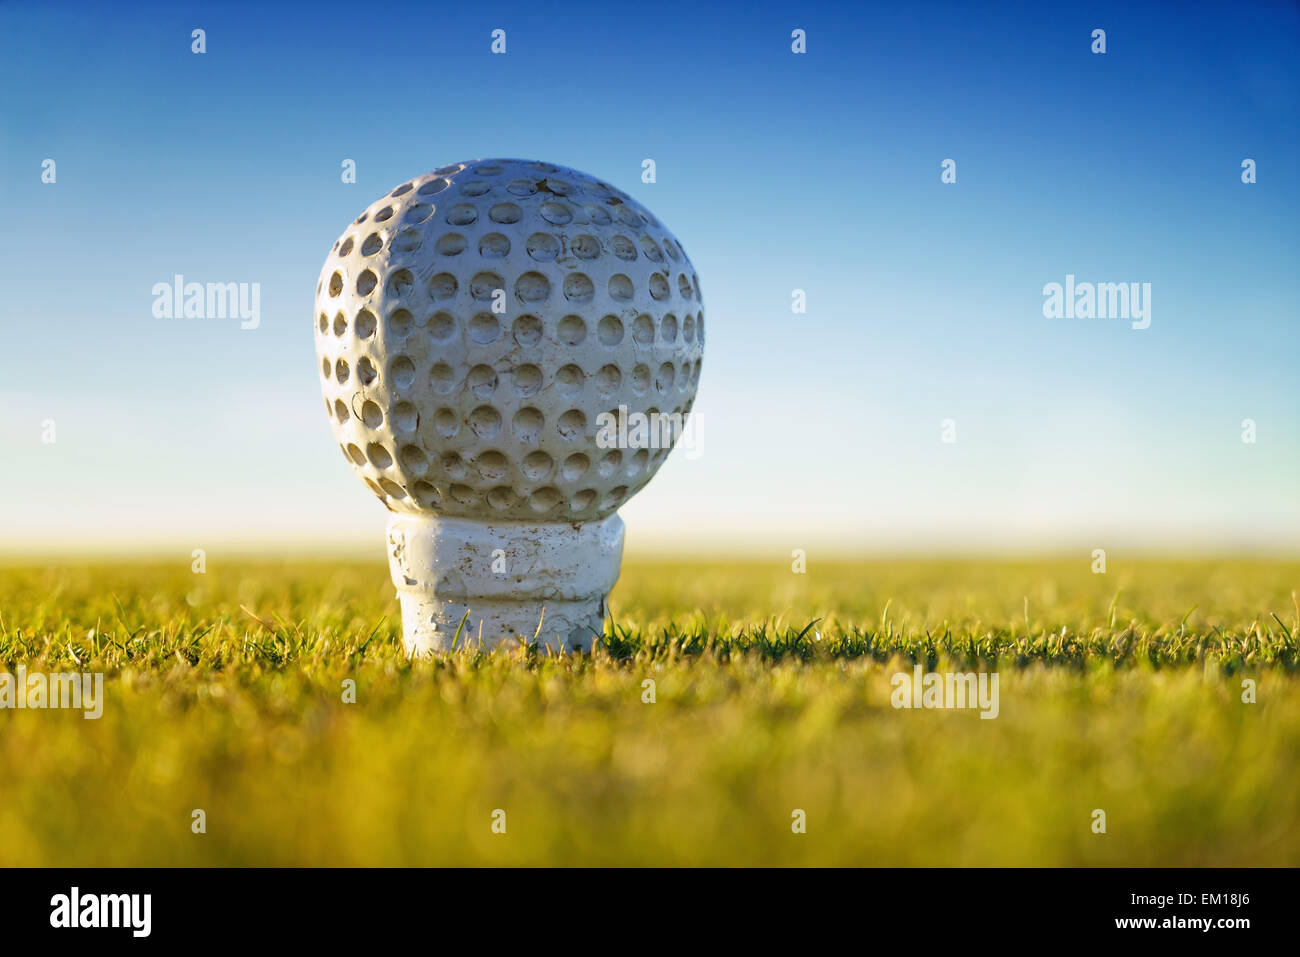 A large golf ball marker on the tee of a golf course in Scotland. - Stock Image